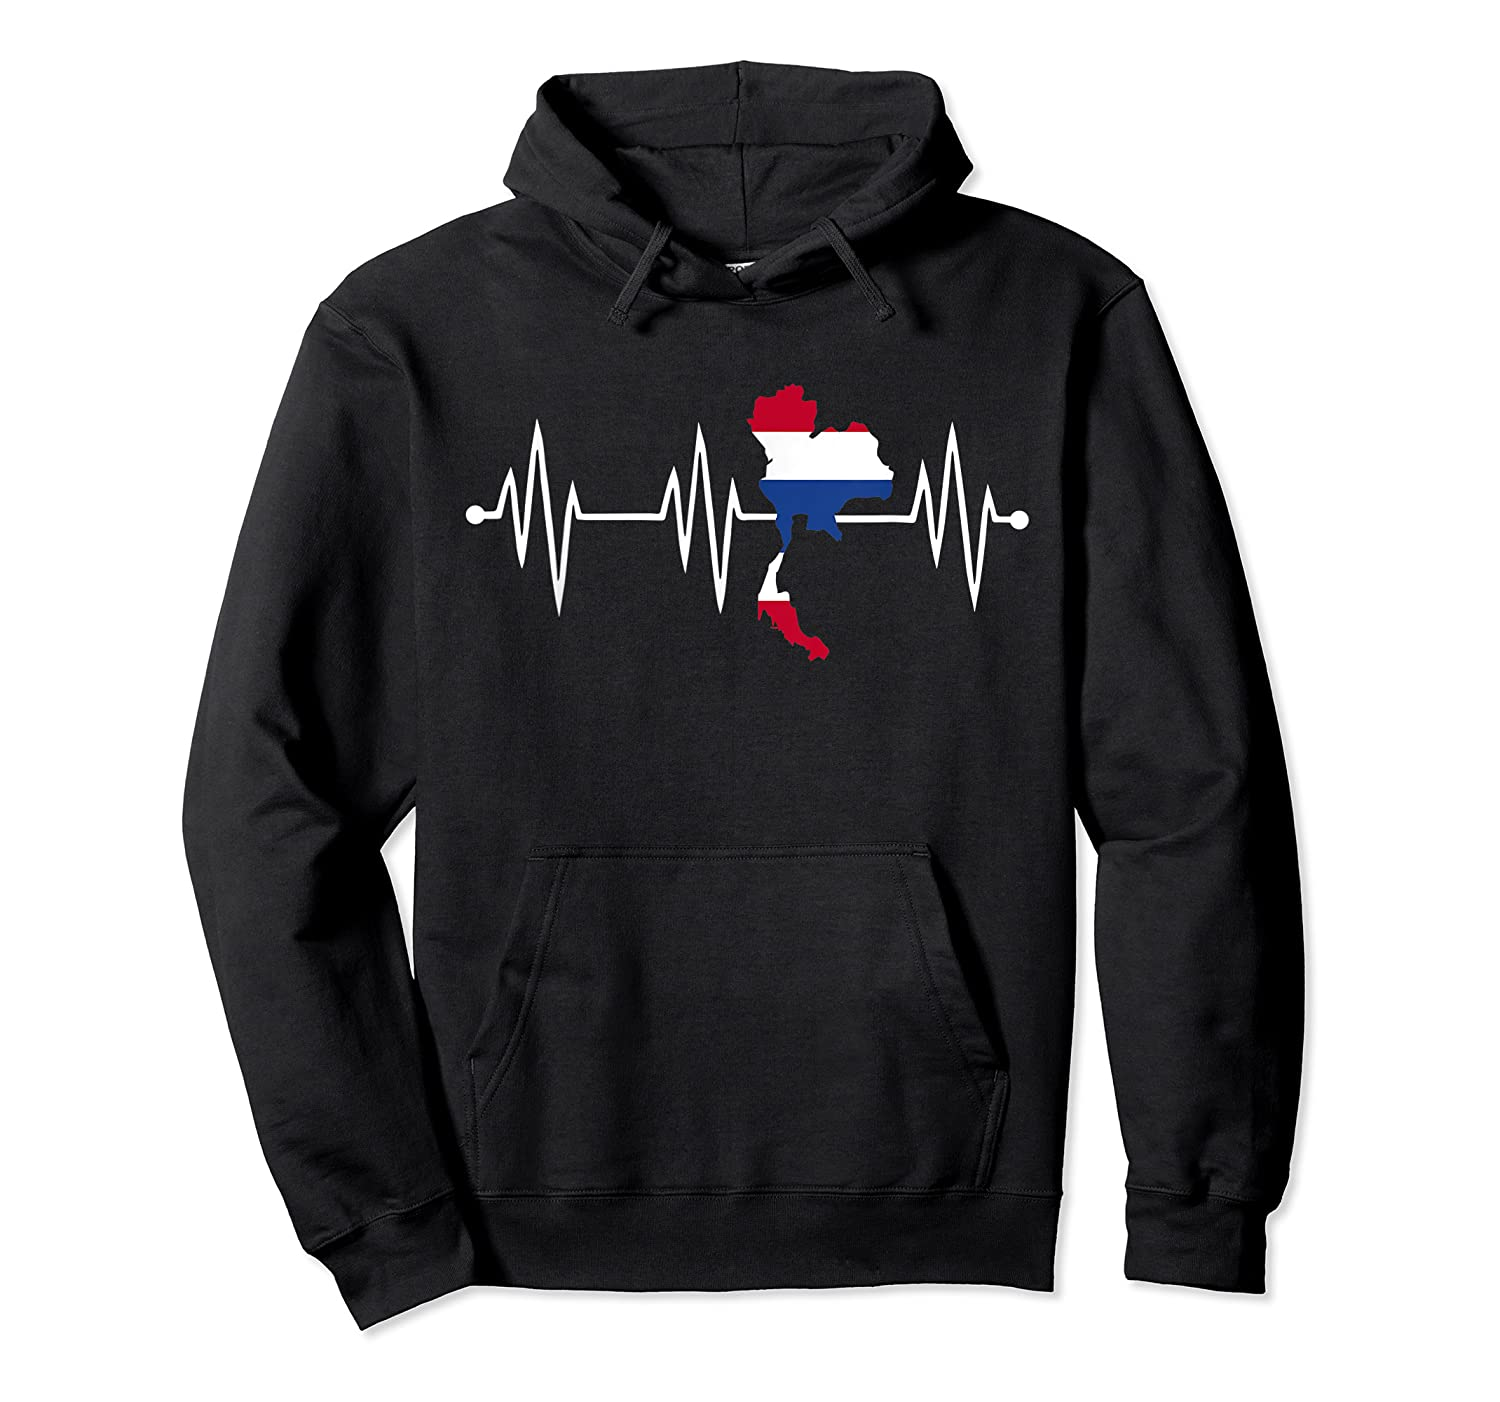 Heartbeat Thailand Shirt For And  Unisex Pullover Hoodie